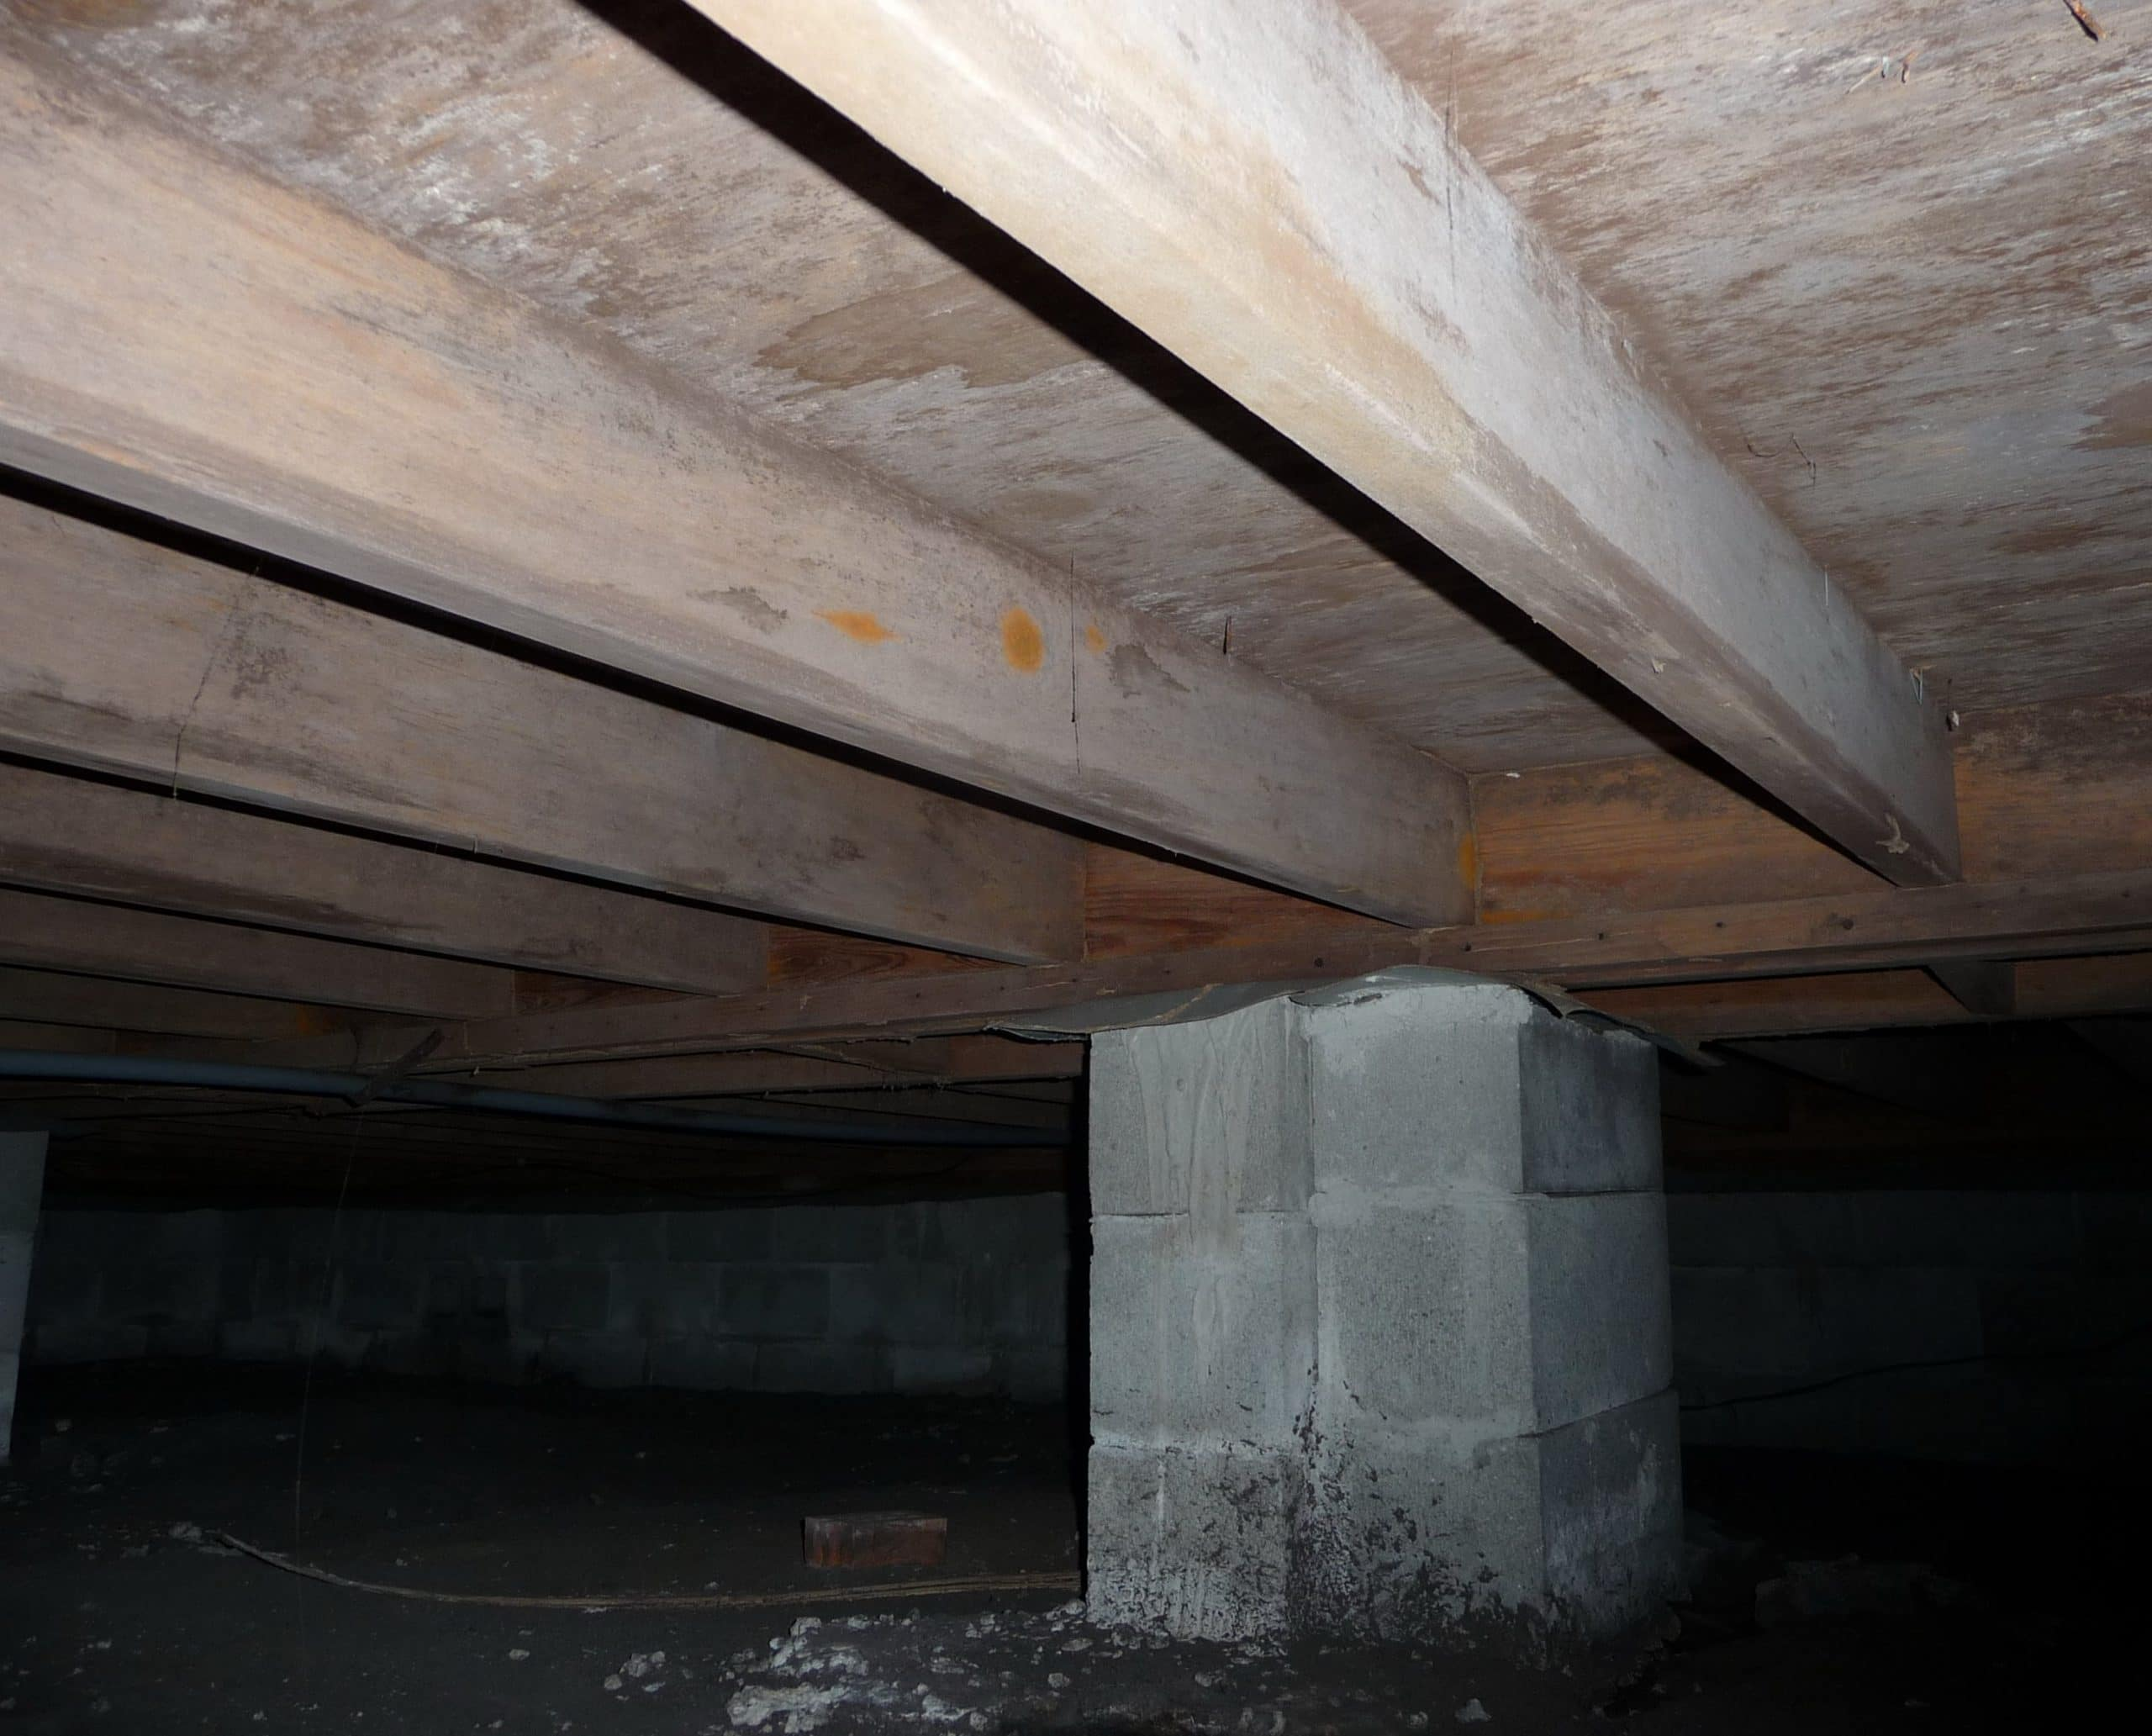 Crawl Space Mold Tips Amp Tricks To Prevent It And Save Big